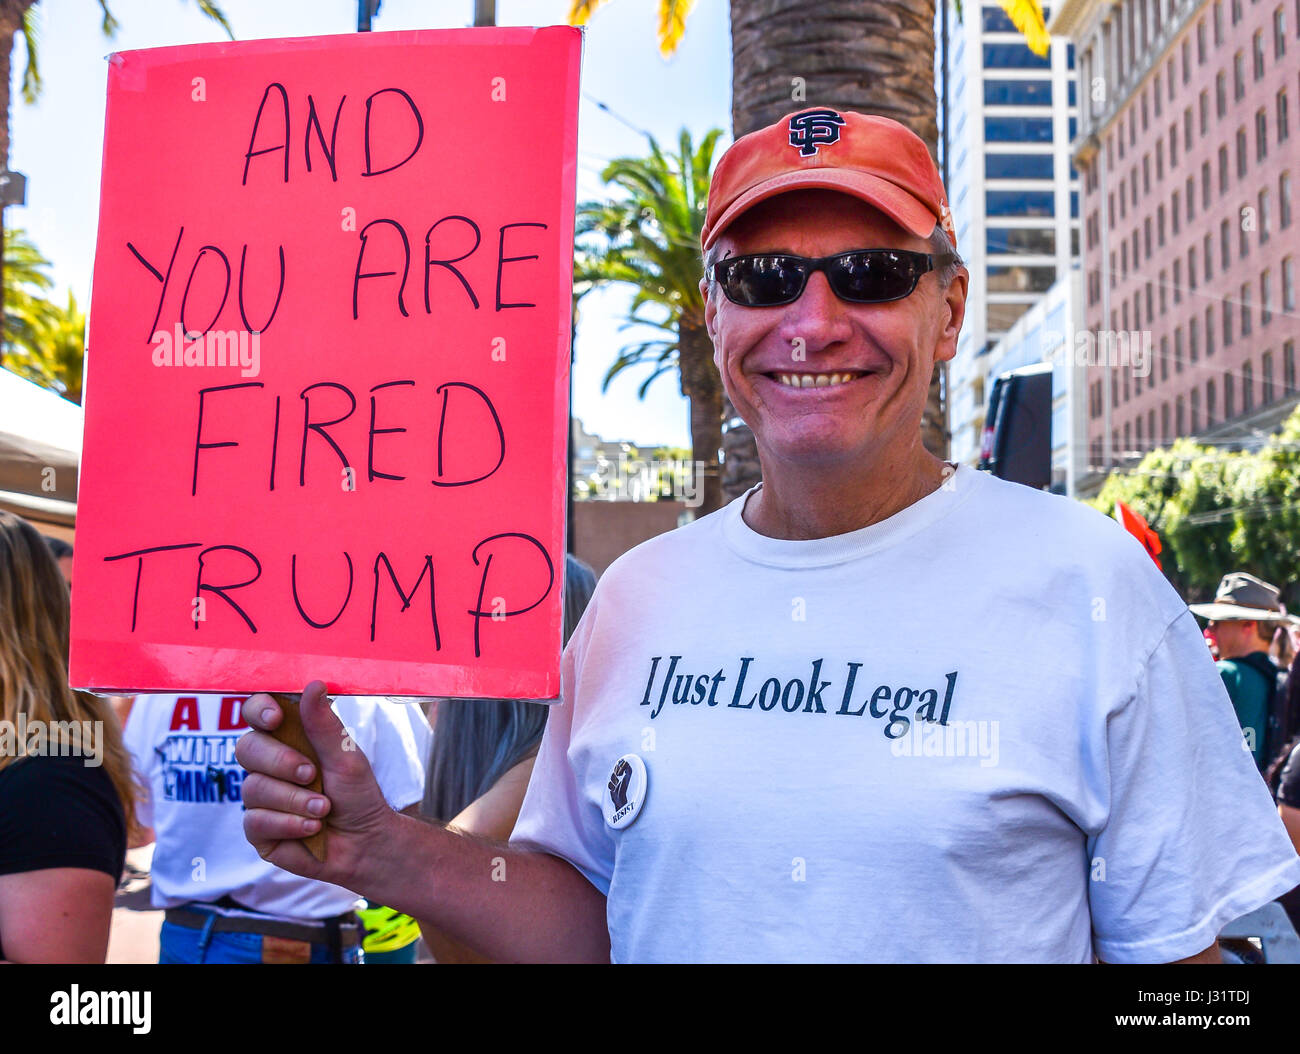 San Francisco, California, USA. 1st May, 2017. Tom Yankowski, a protester at the May 1 'Day Without Immigrants' - Stock Image